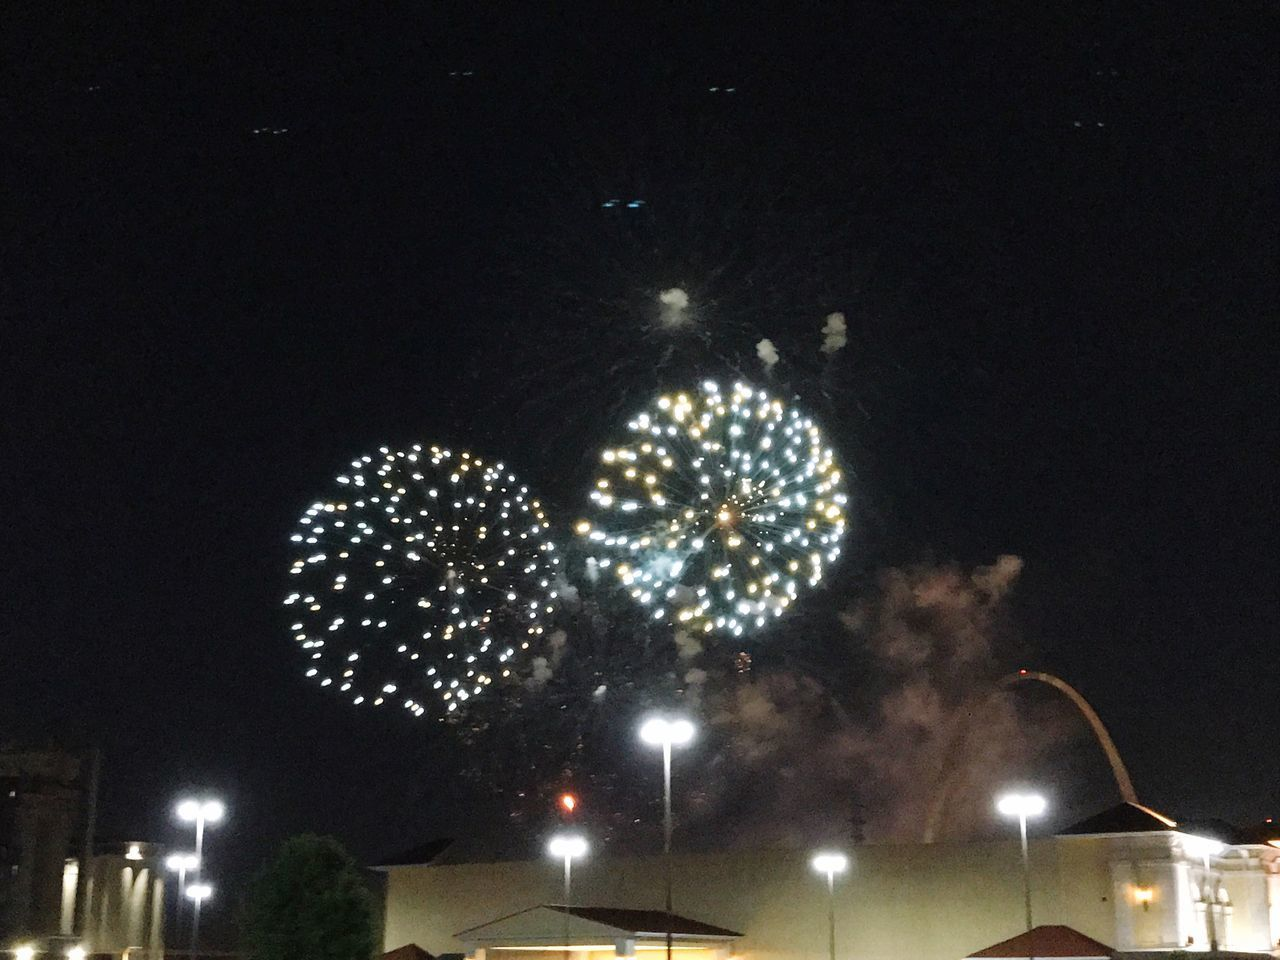 LOW ANGLE VIEW OF FIREWORK DISPLAY OVER STREET